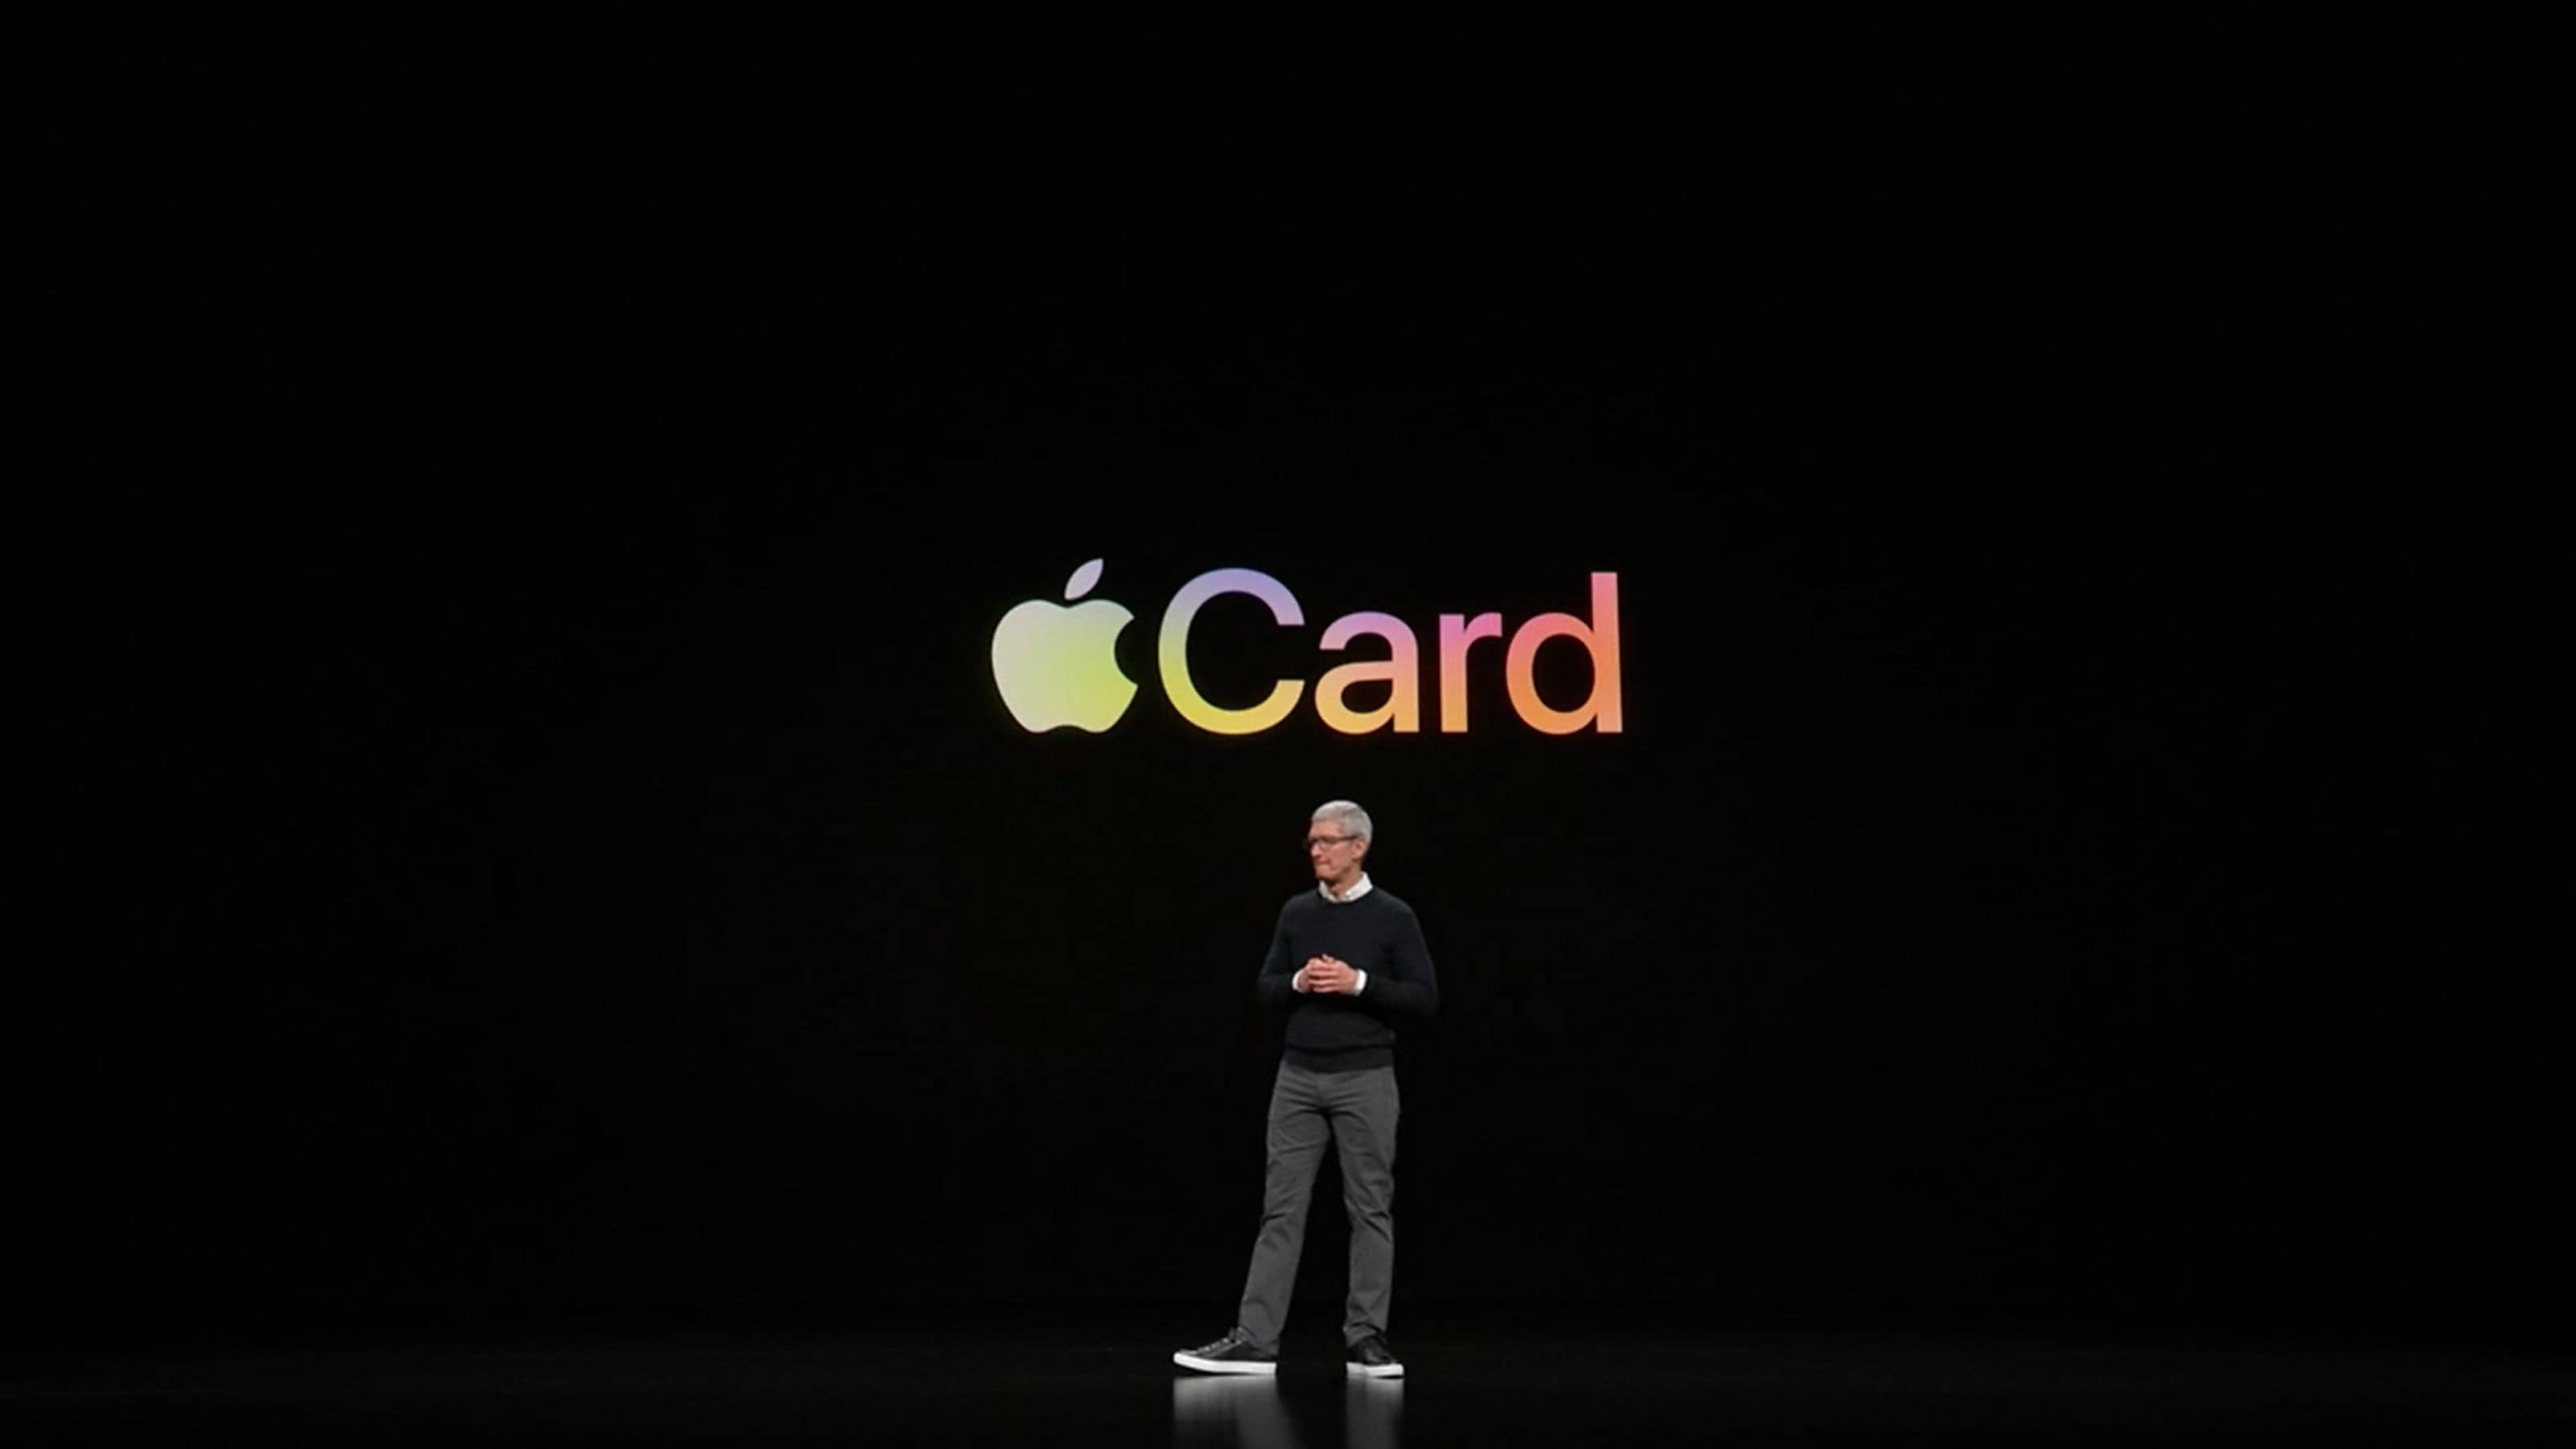 Apple's first credit card called the 'Apple Card' might release early next month